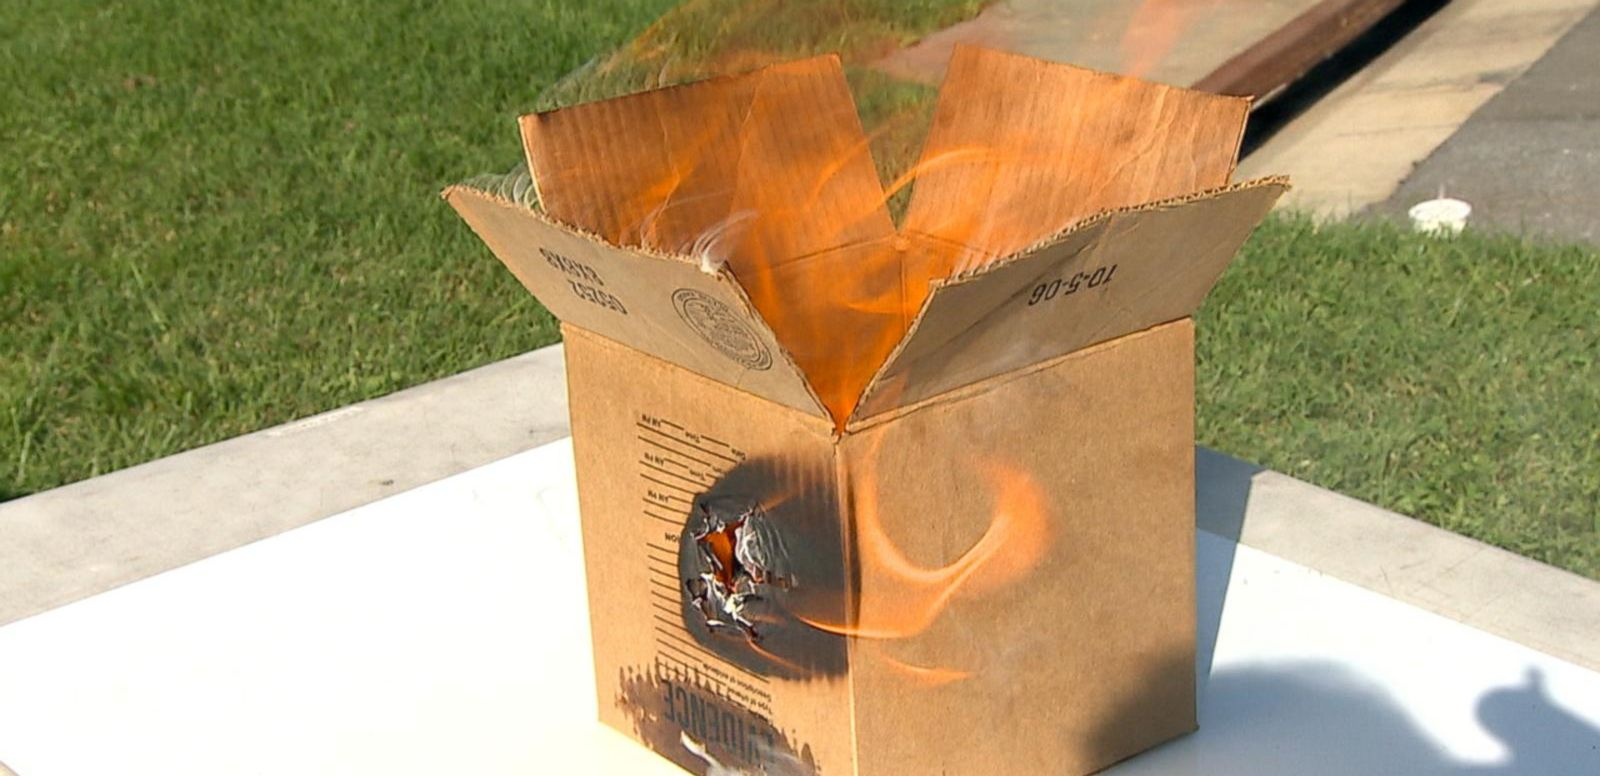 VIDEO: Officials Warn of Spontaneous Combustion Risk of Linseed Oil and Other Common Household Products